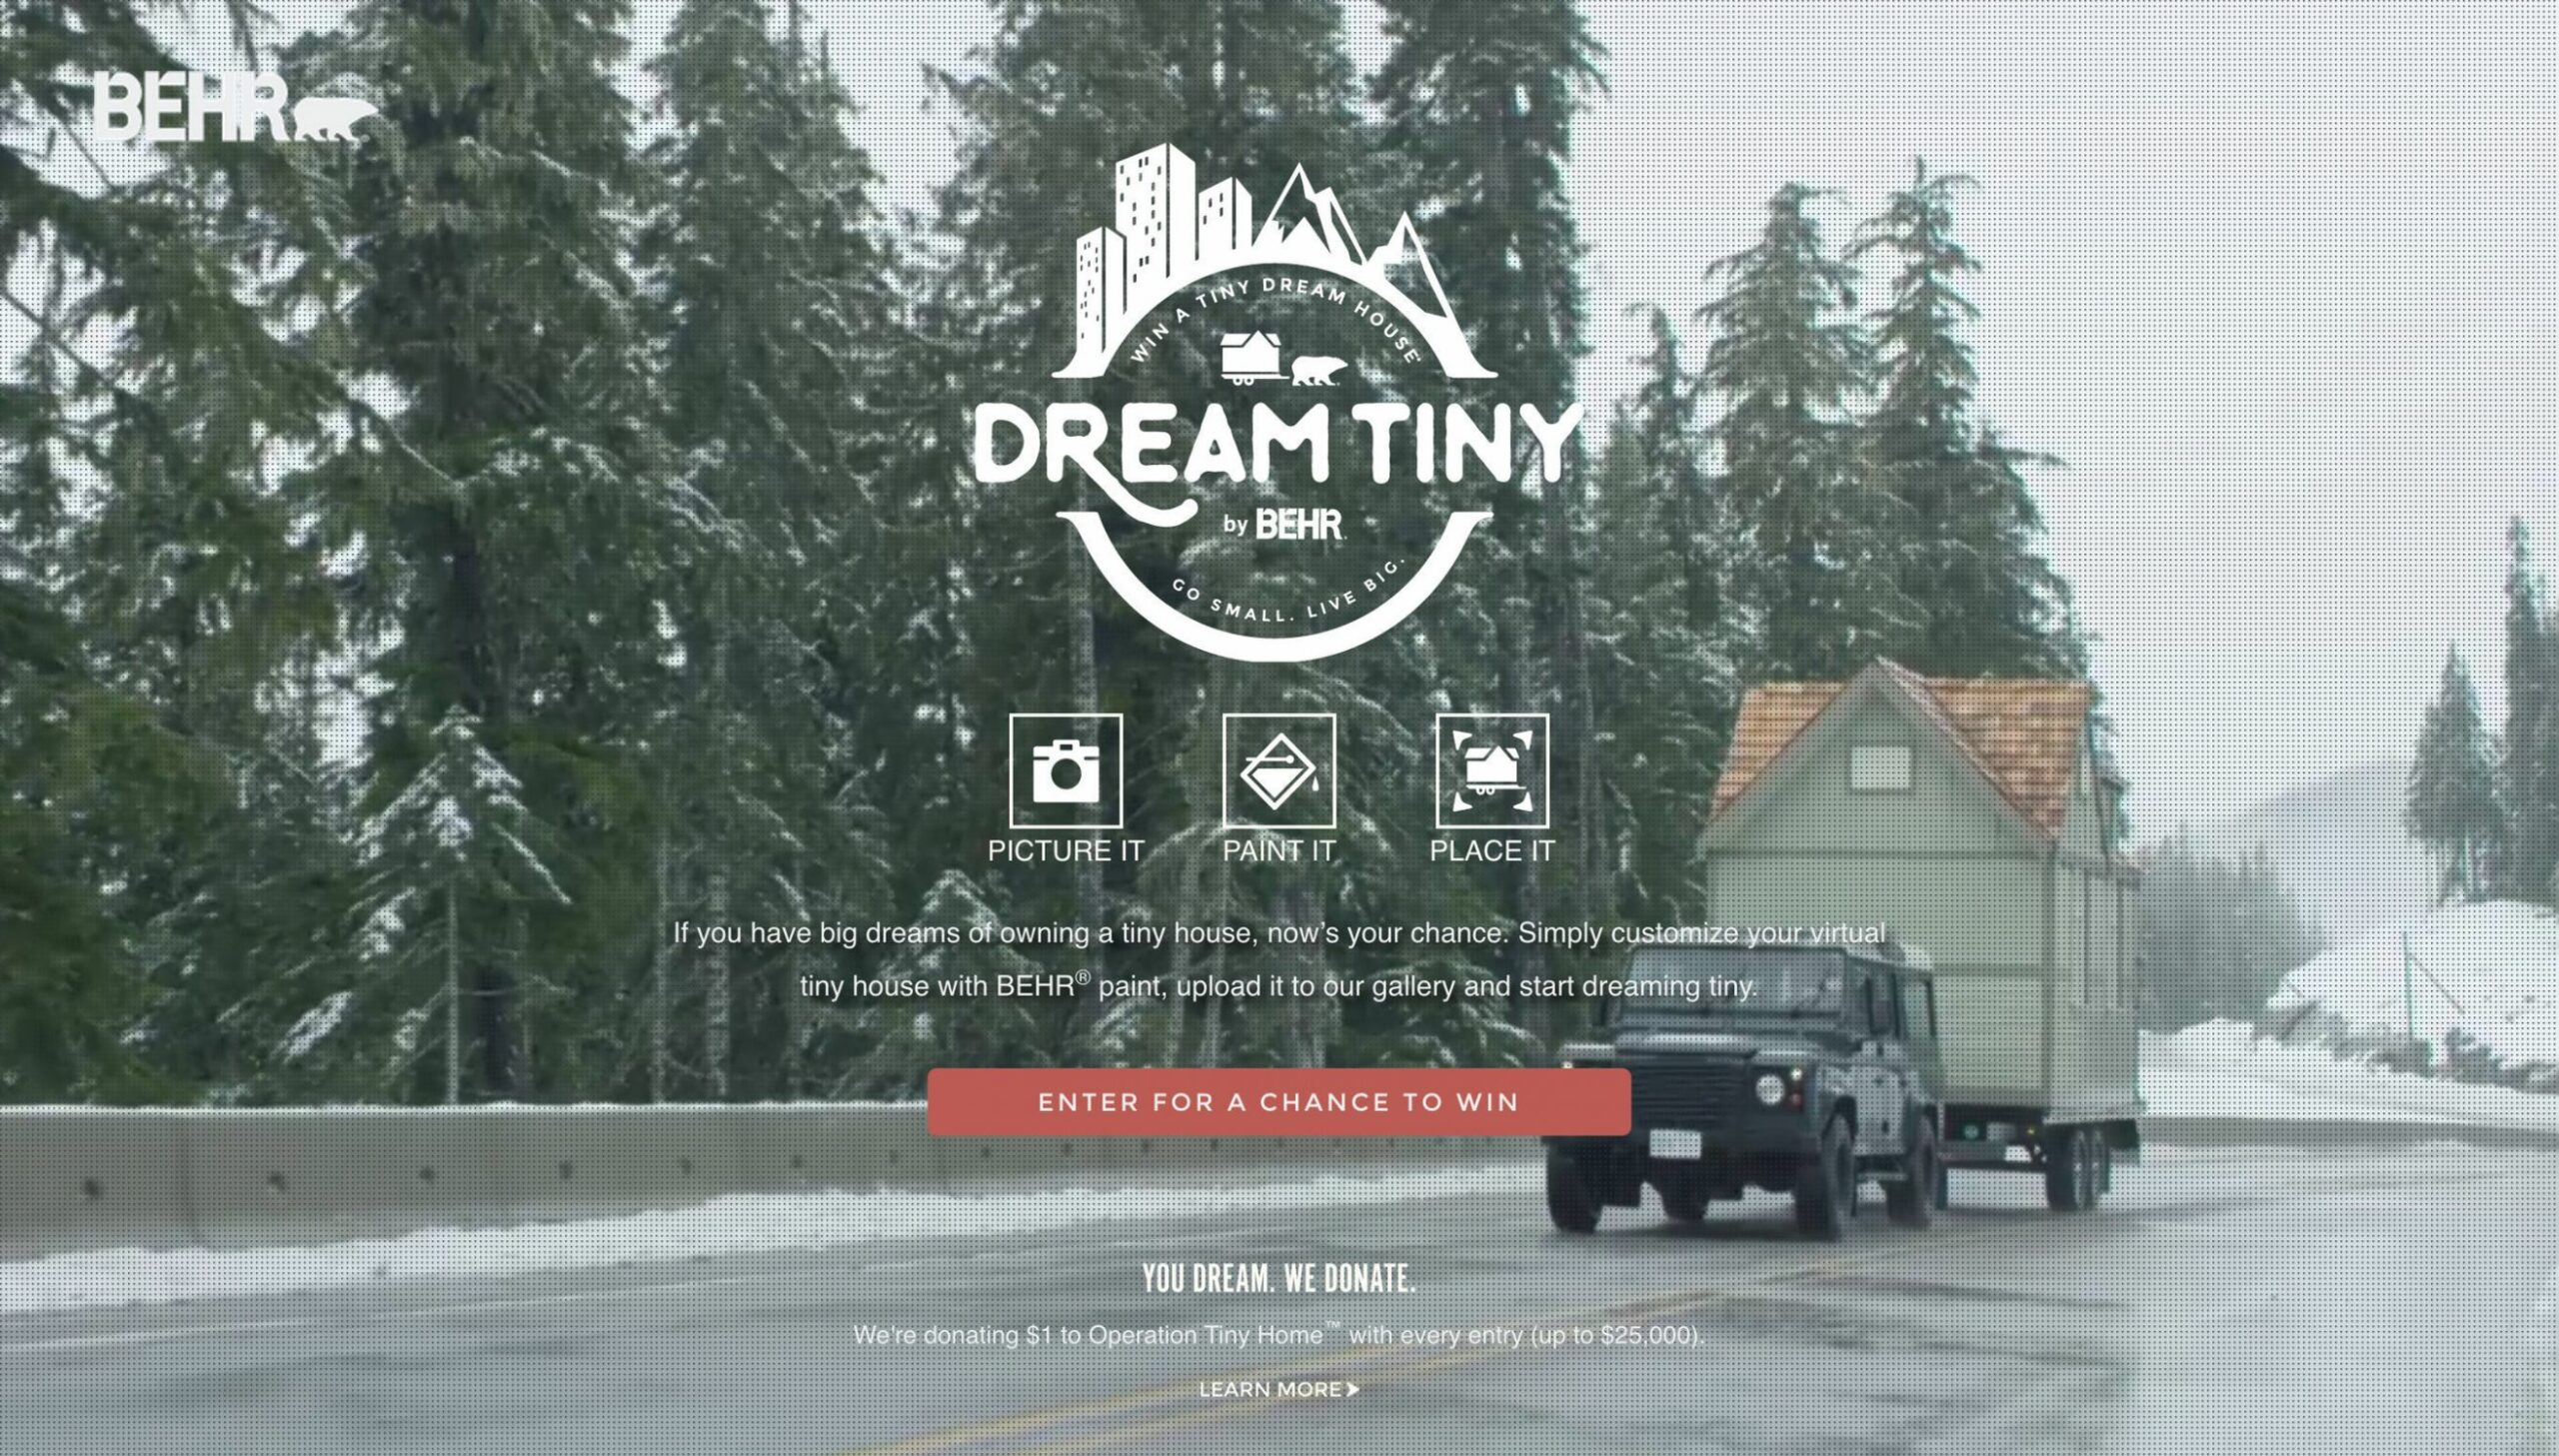 Behr Paint Is Making Huge Dreams Come True With Tiny House Giveaway